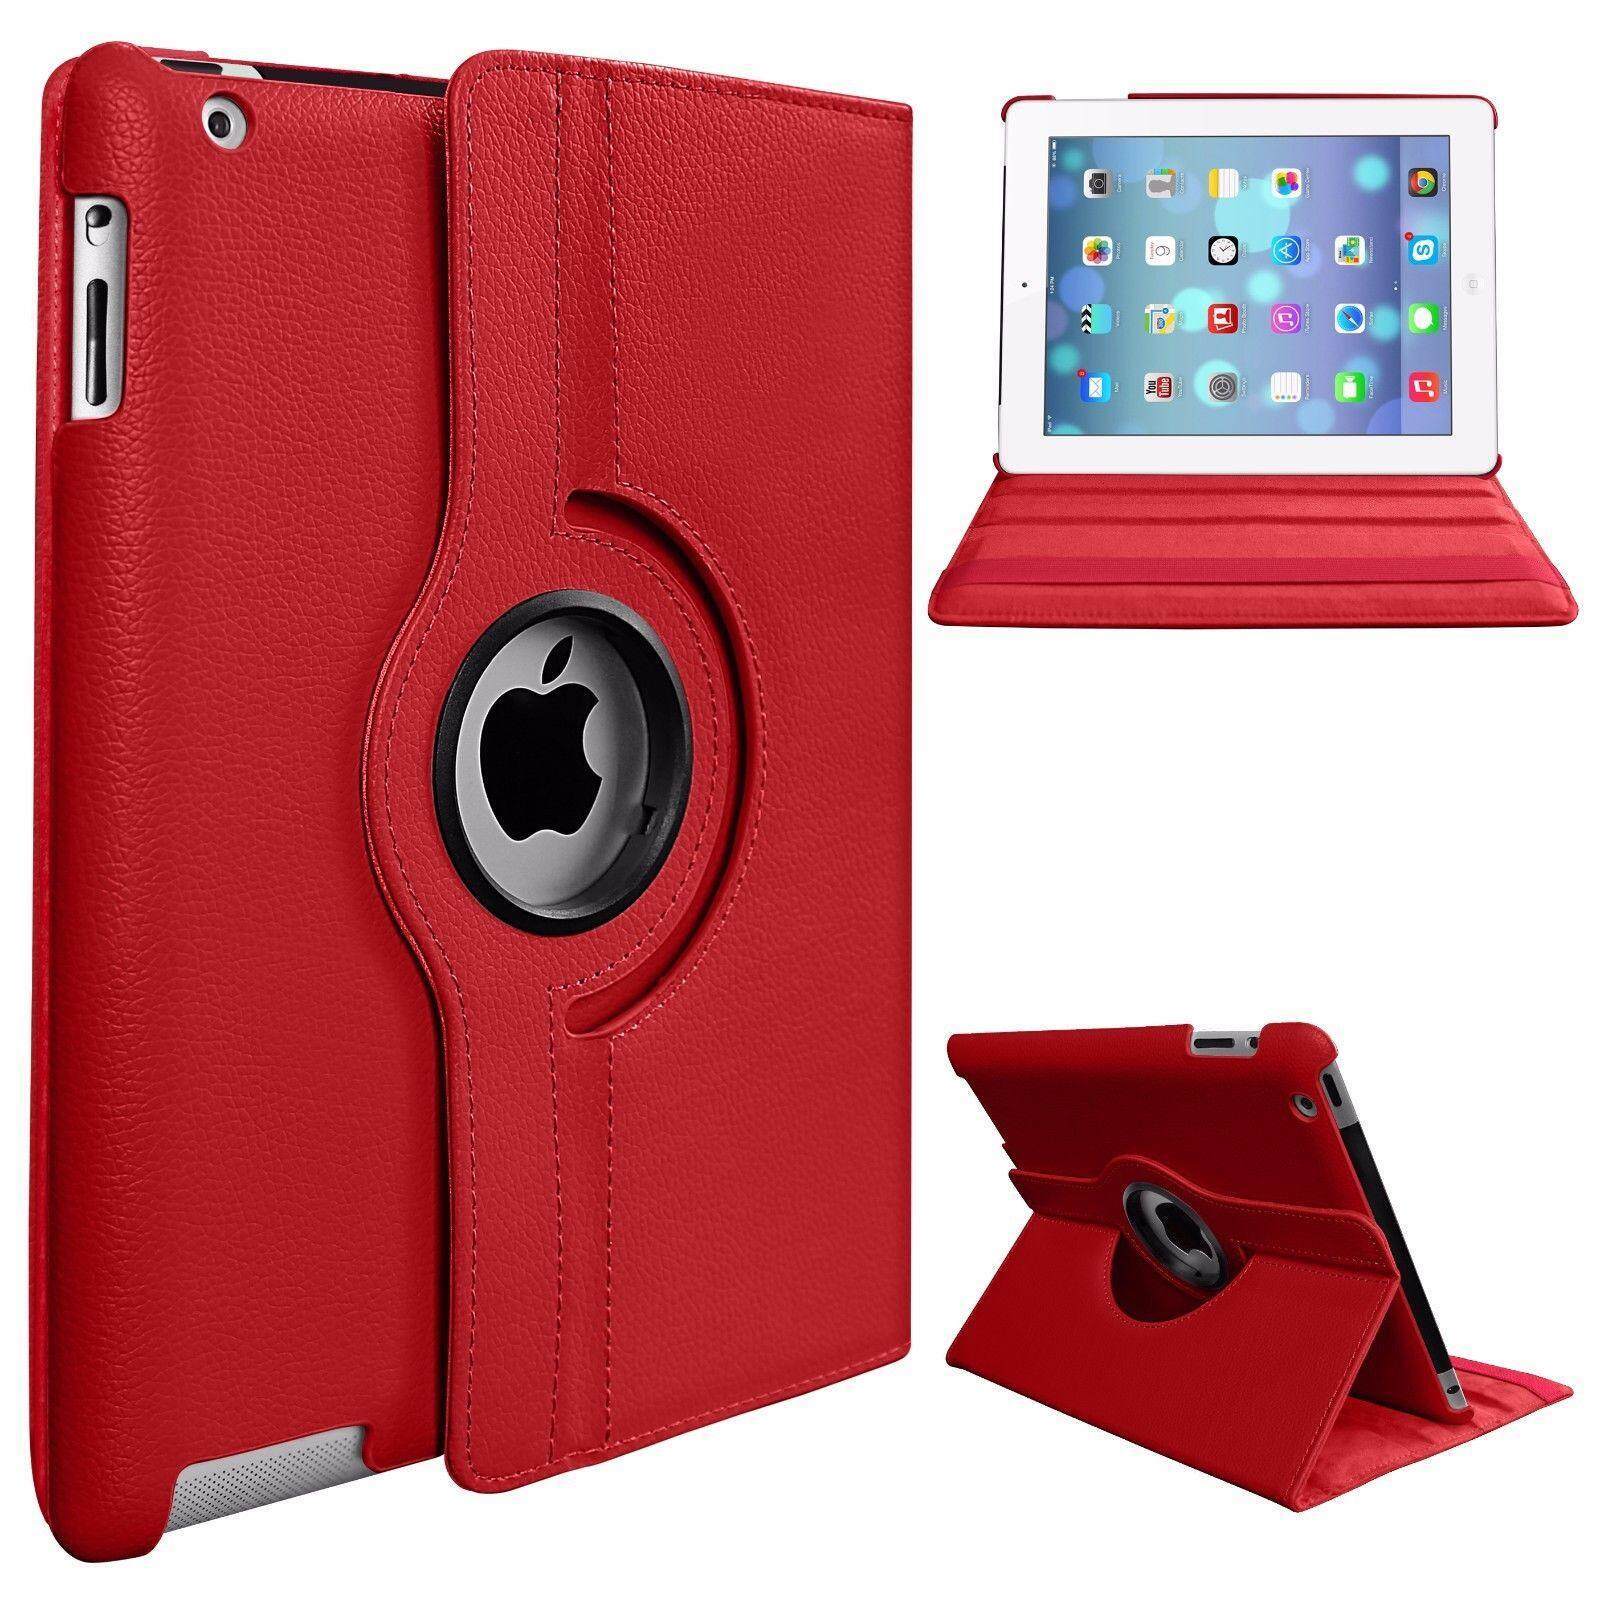 "360 Rotation PU Leather Smart Stand Case Cover for Apple iPad 9.7"" 2017 Version Tablet"